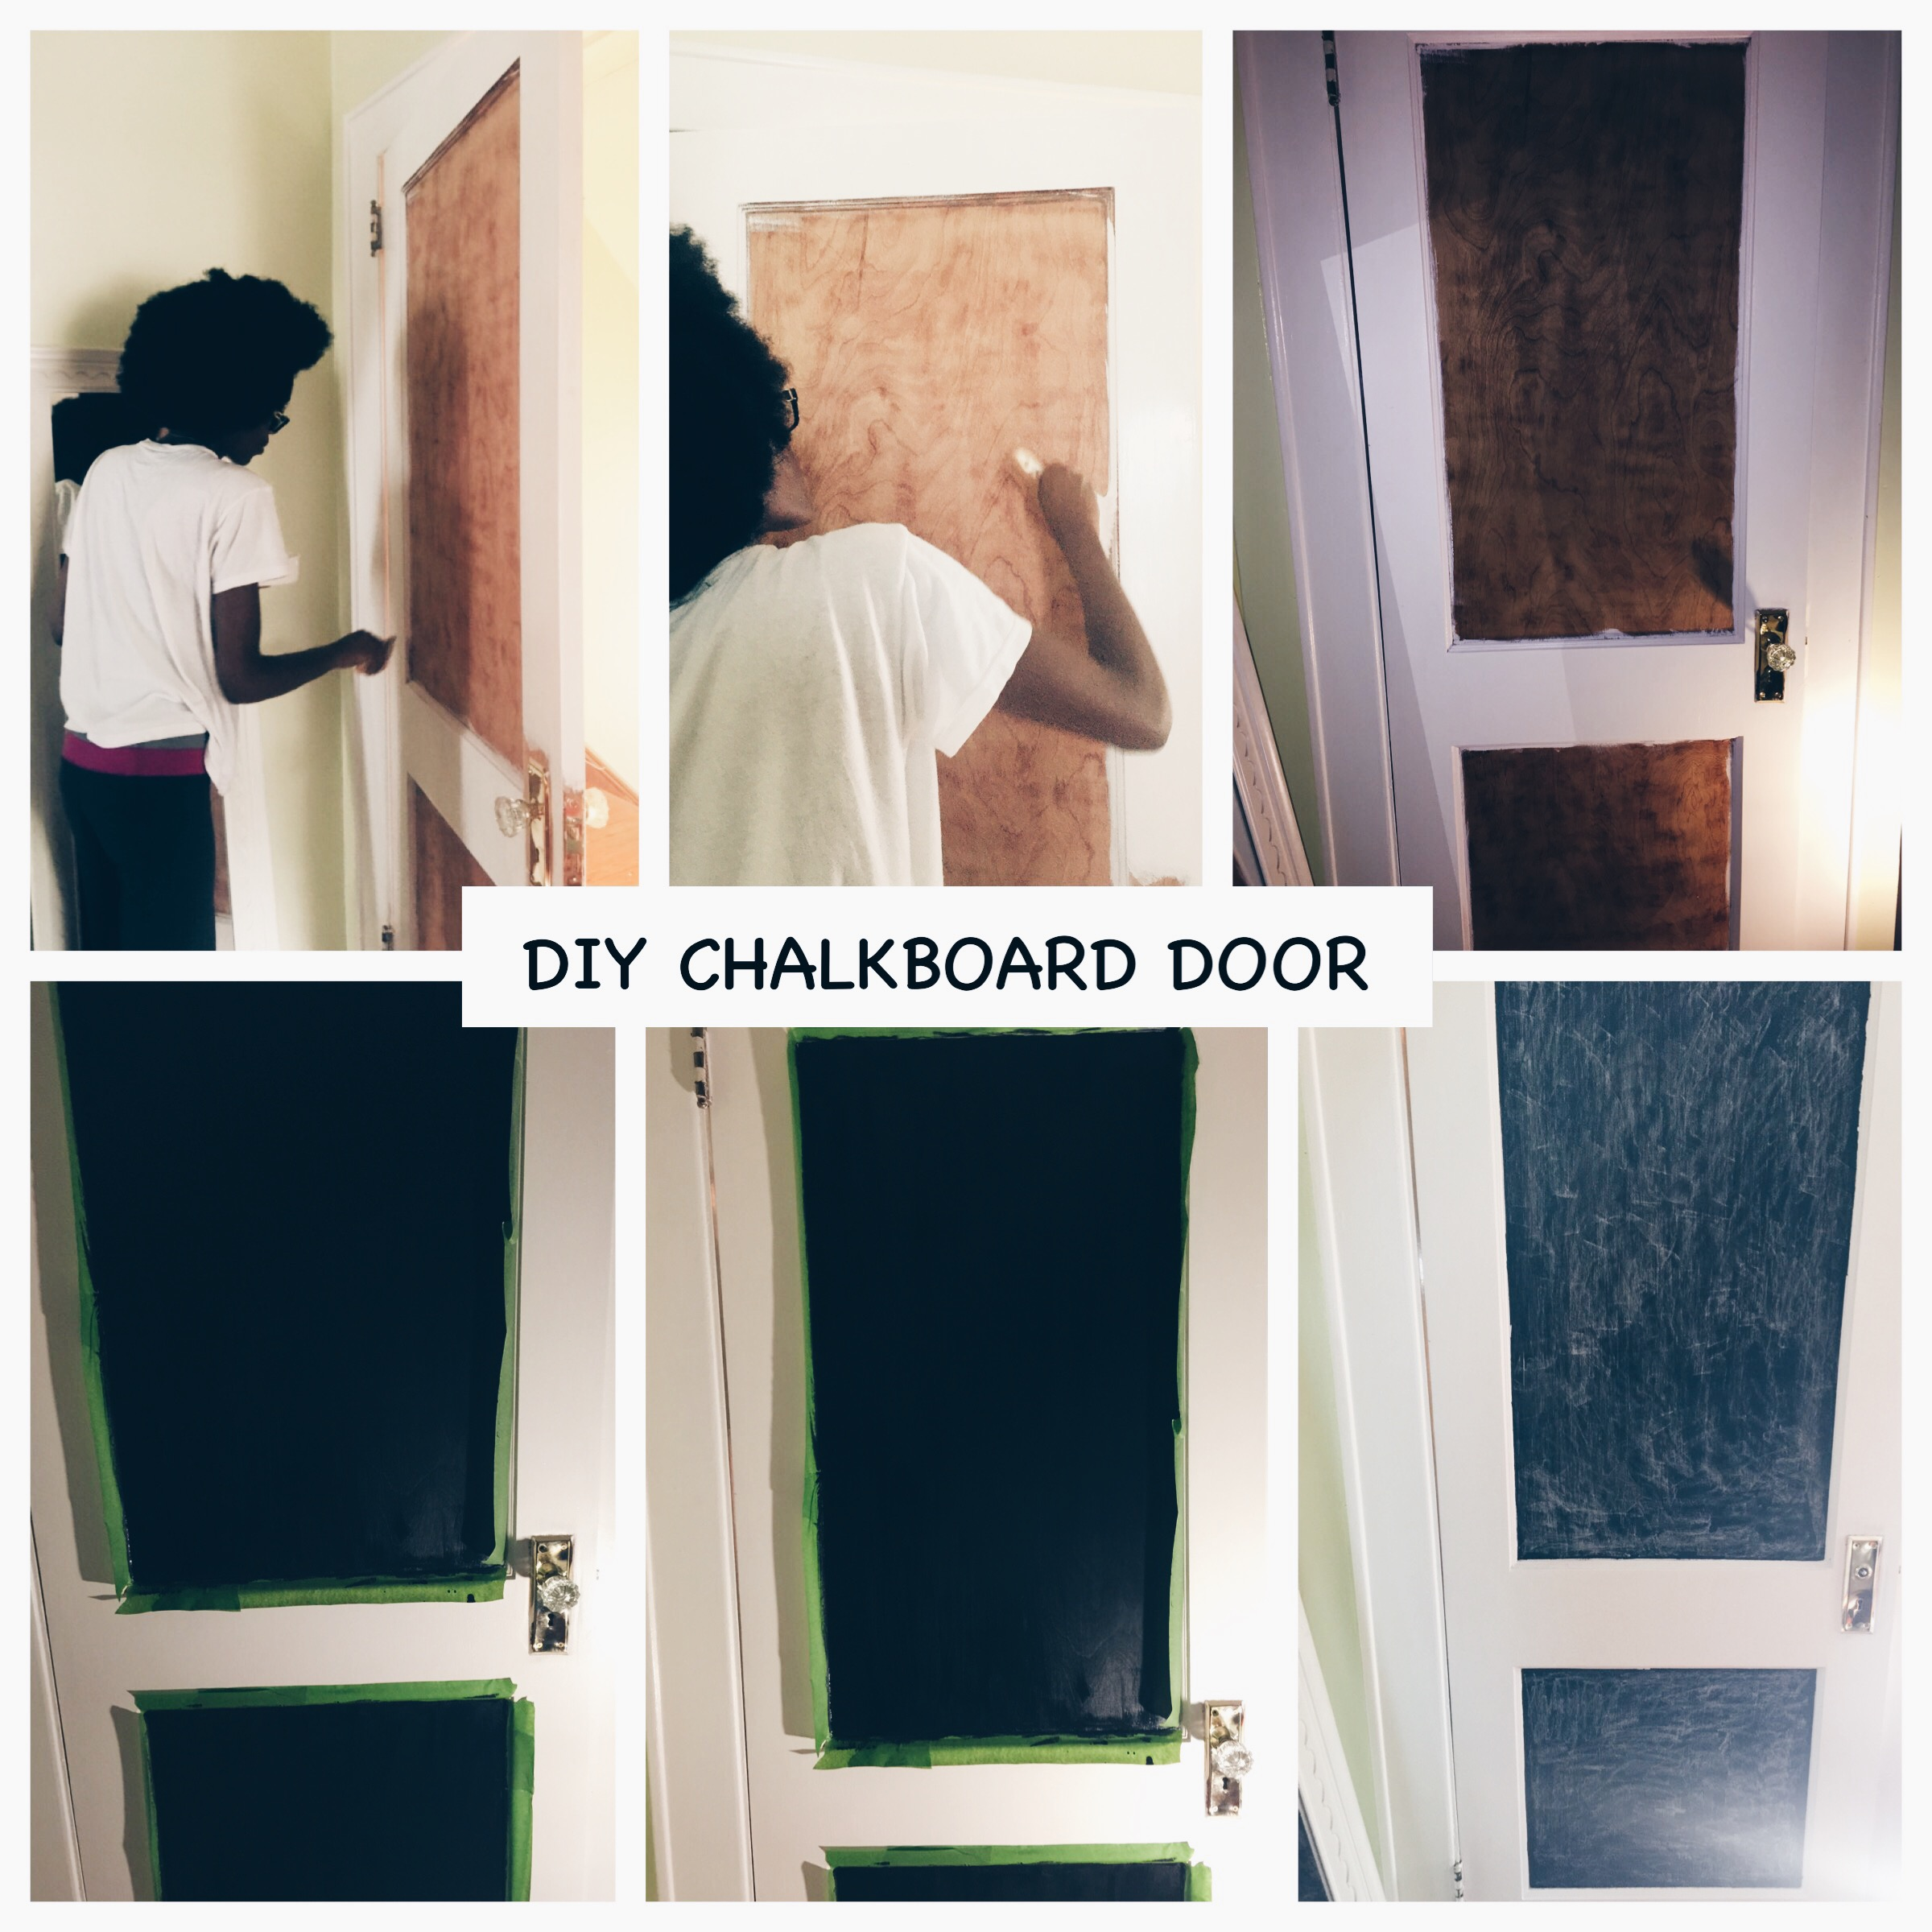 DIY Chalkboard Door. & DIY (Home Edition): Chalkboard Door | Beauty n\u0027 Curlz